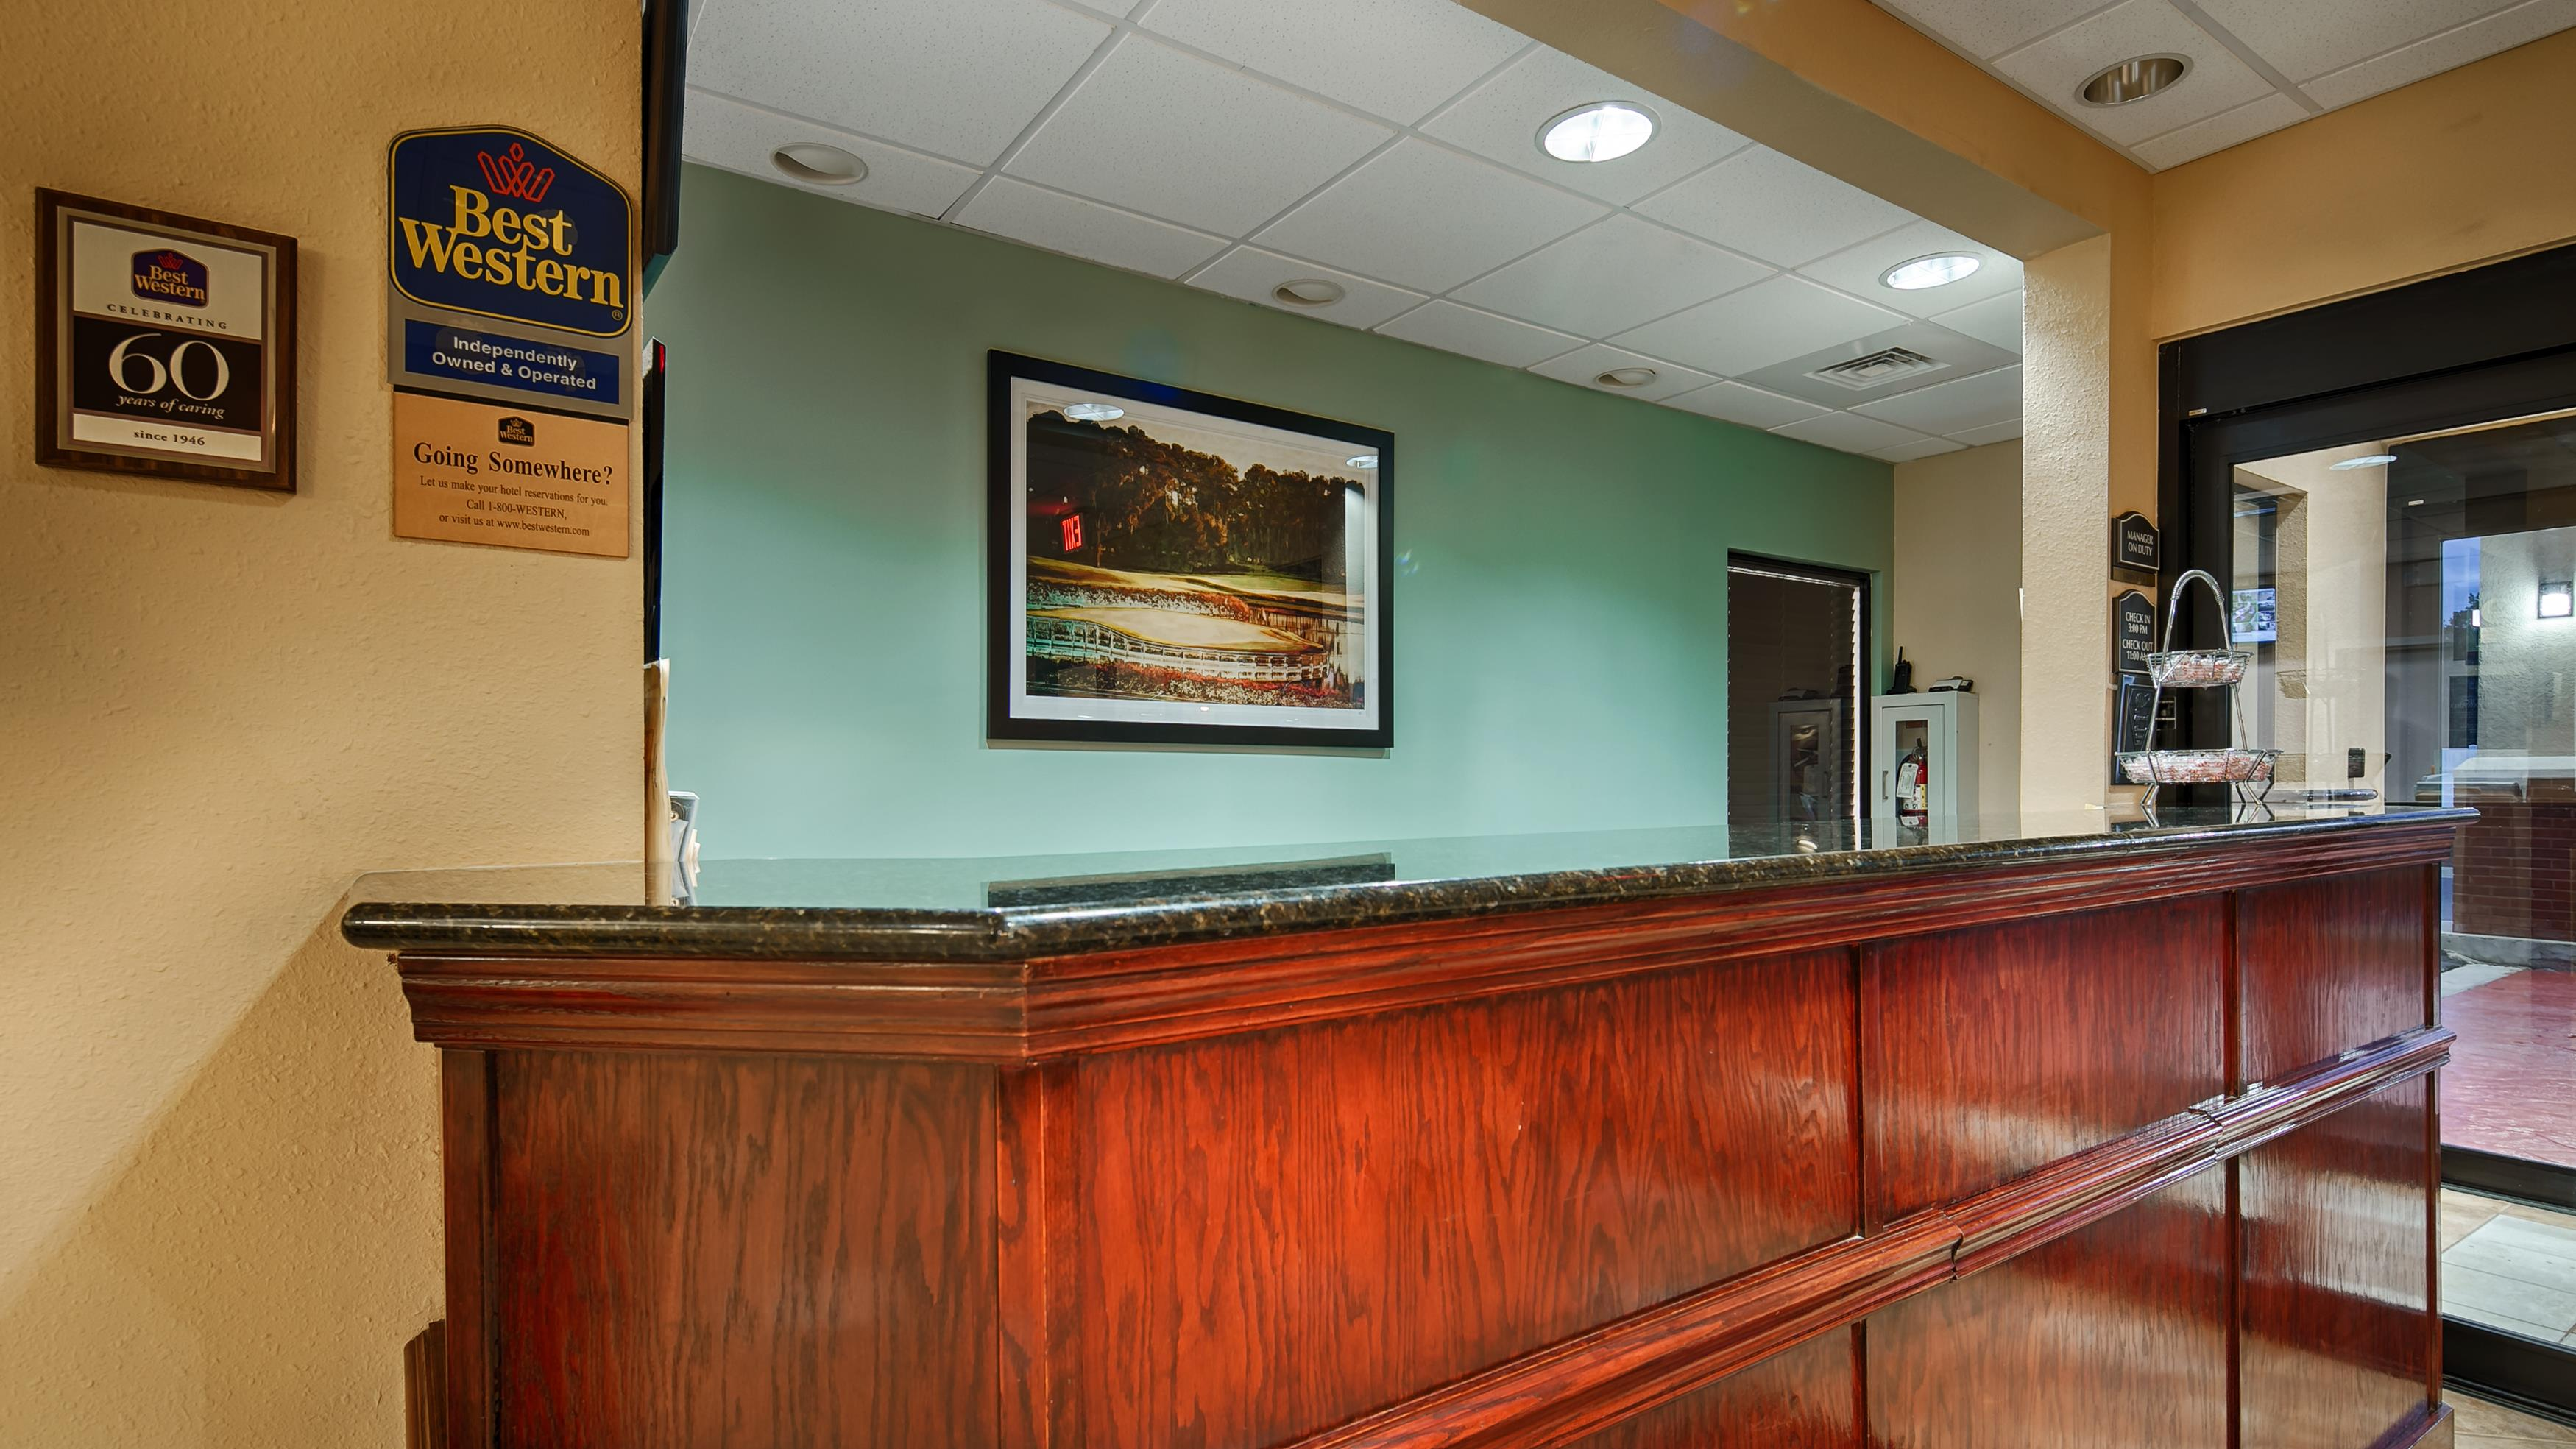 Country Inn & Suites by Radisson, Midway, FL image 3